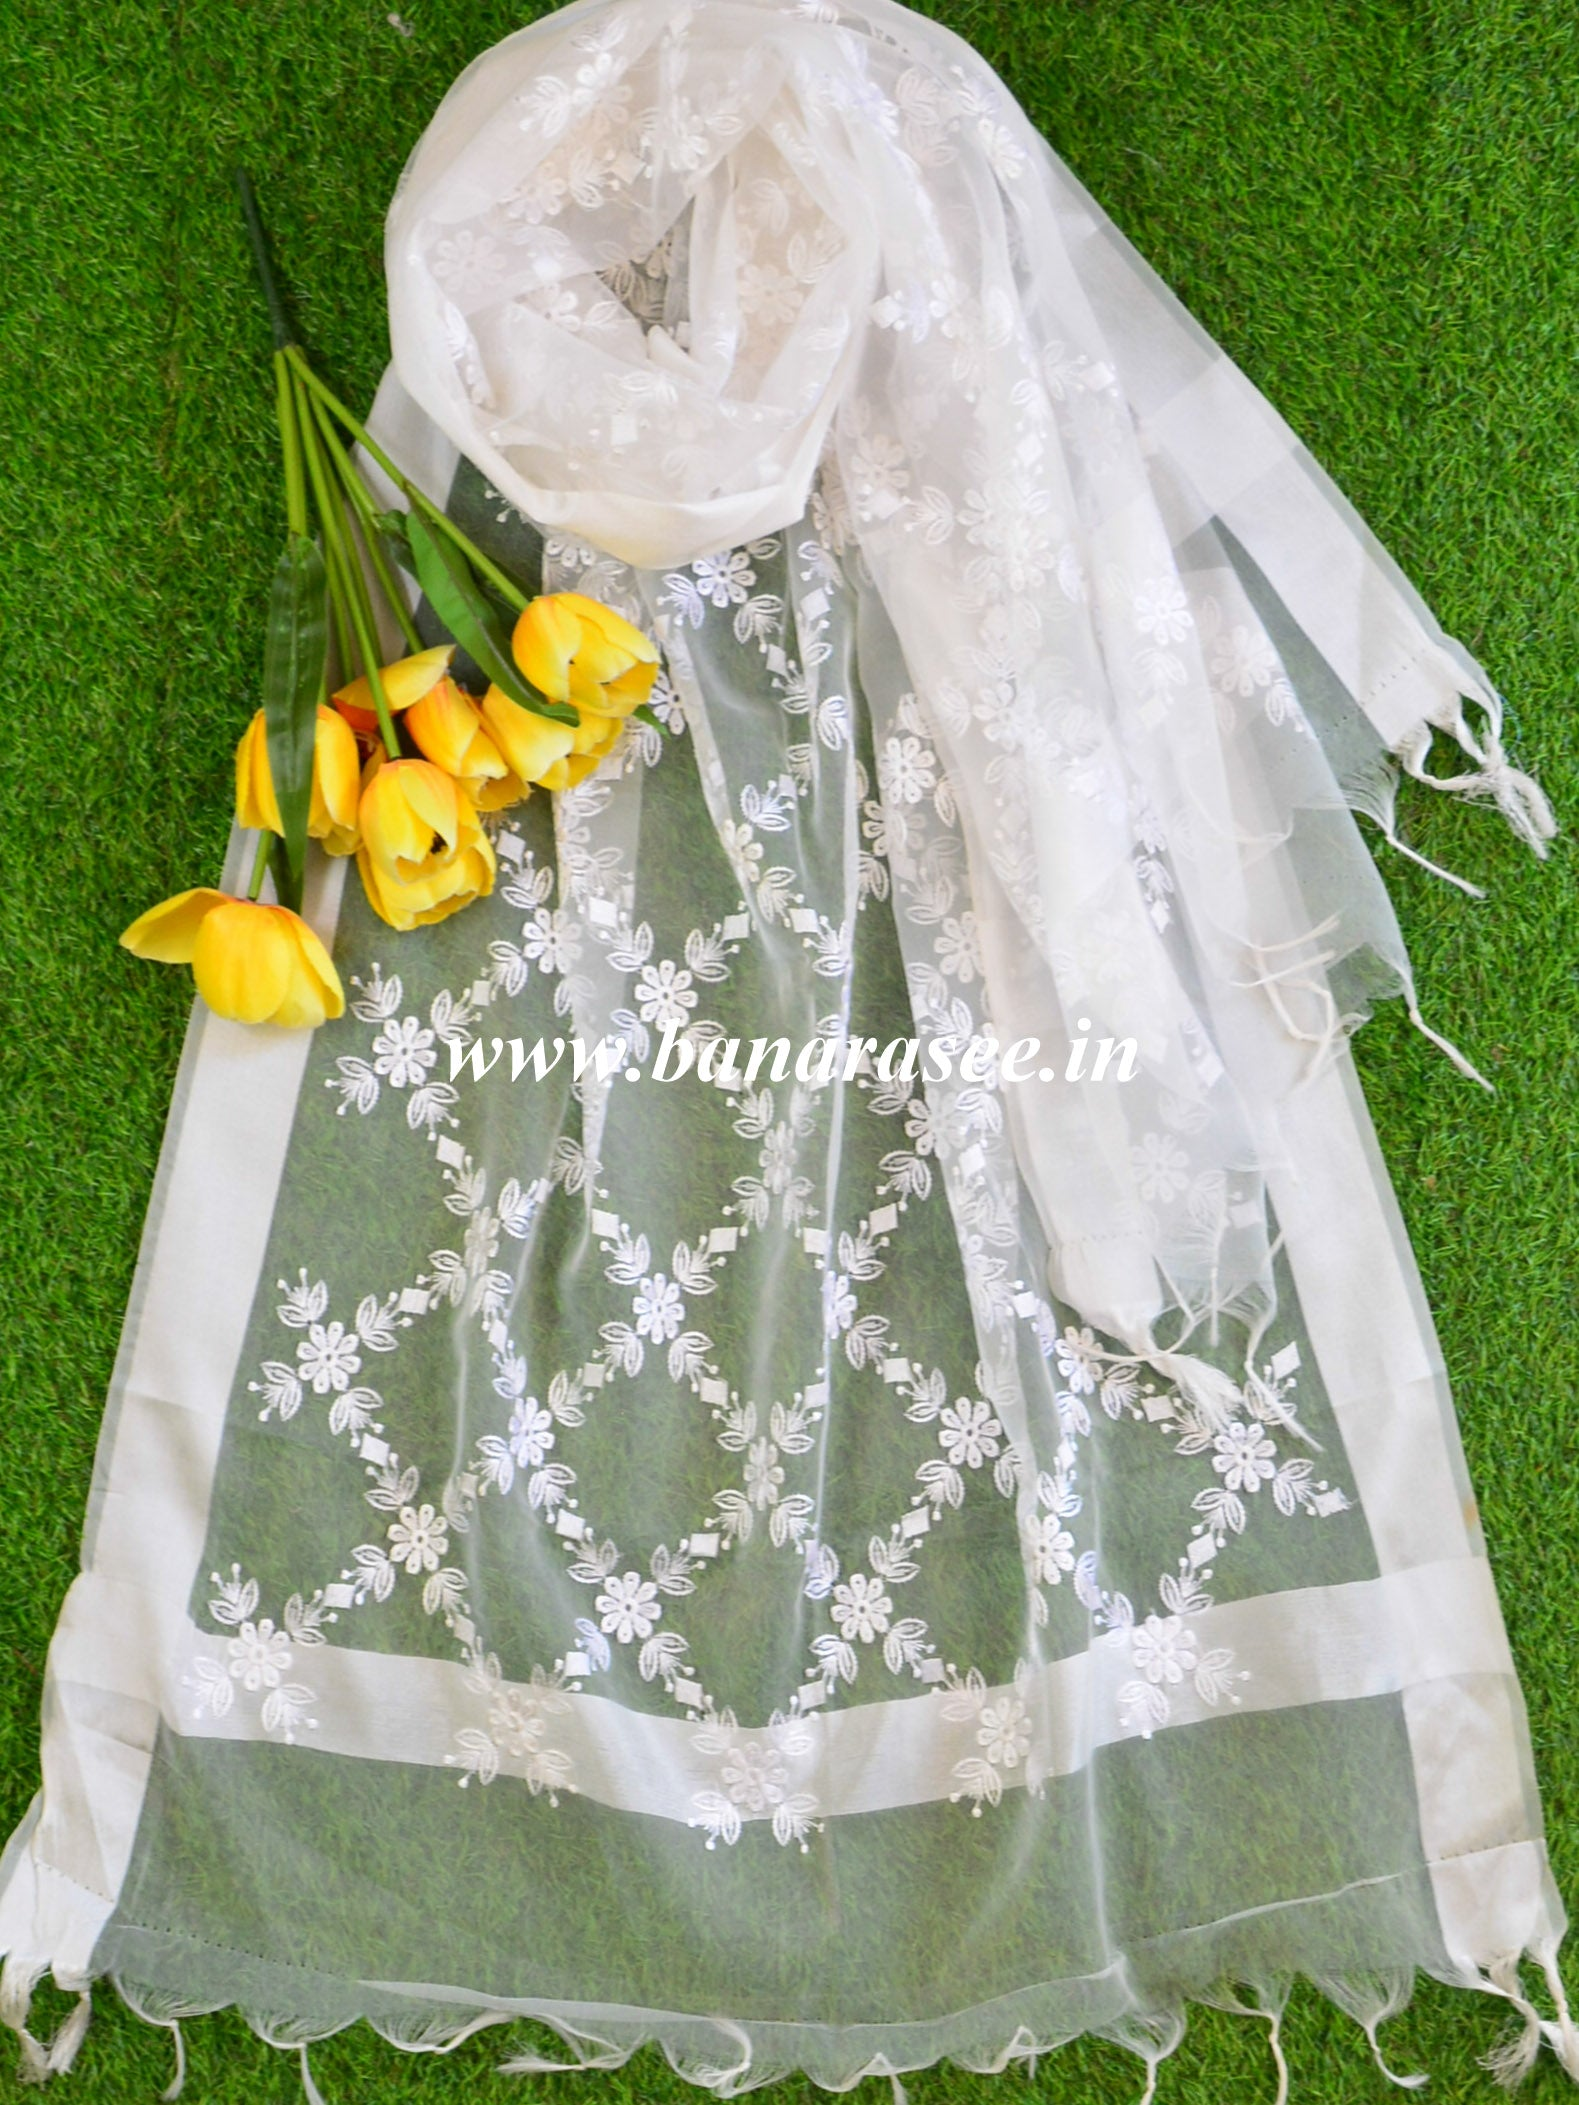 Banarasee Embroidered Resham Jaal Design Organza Dupatta-White